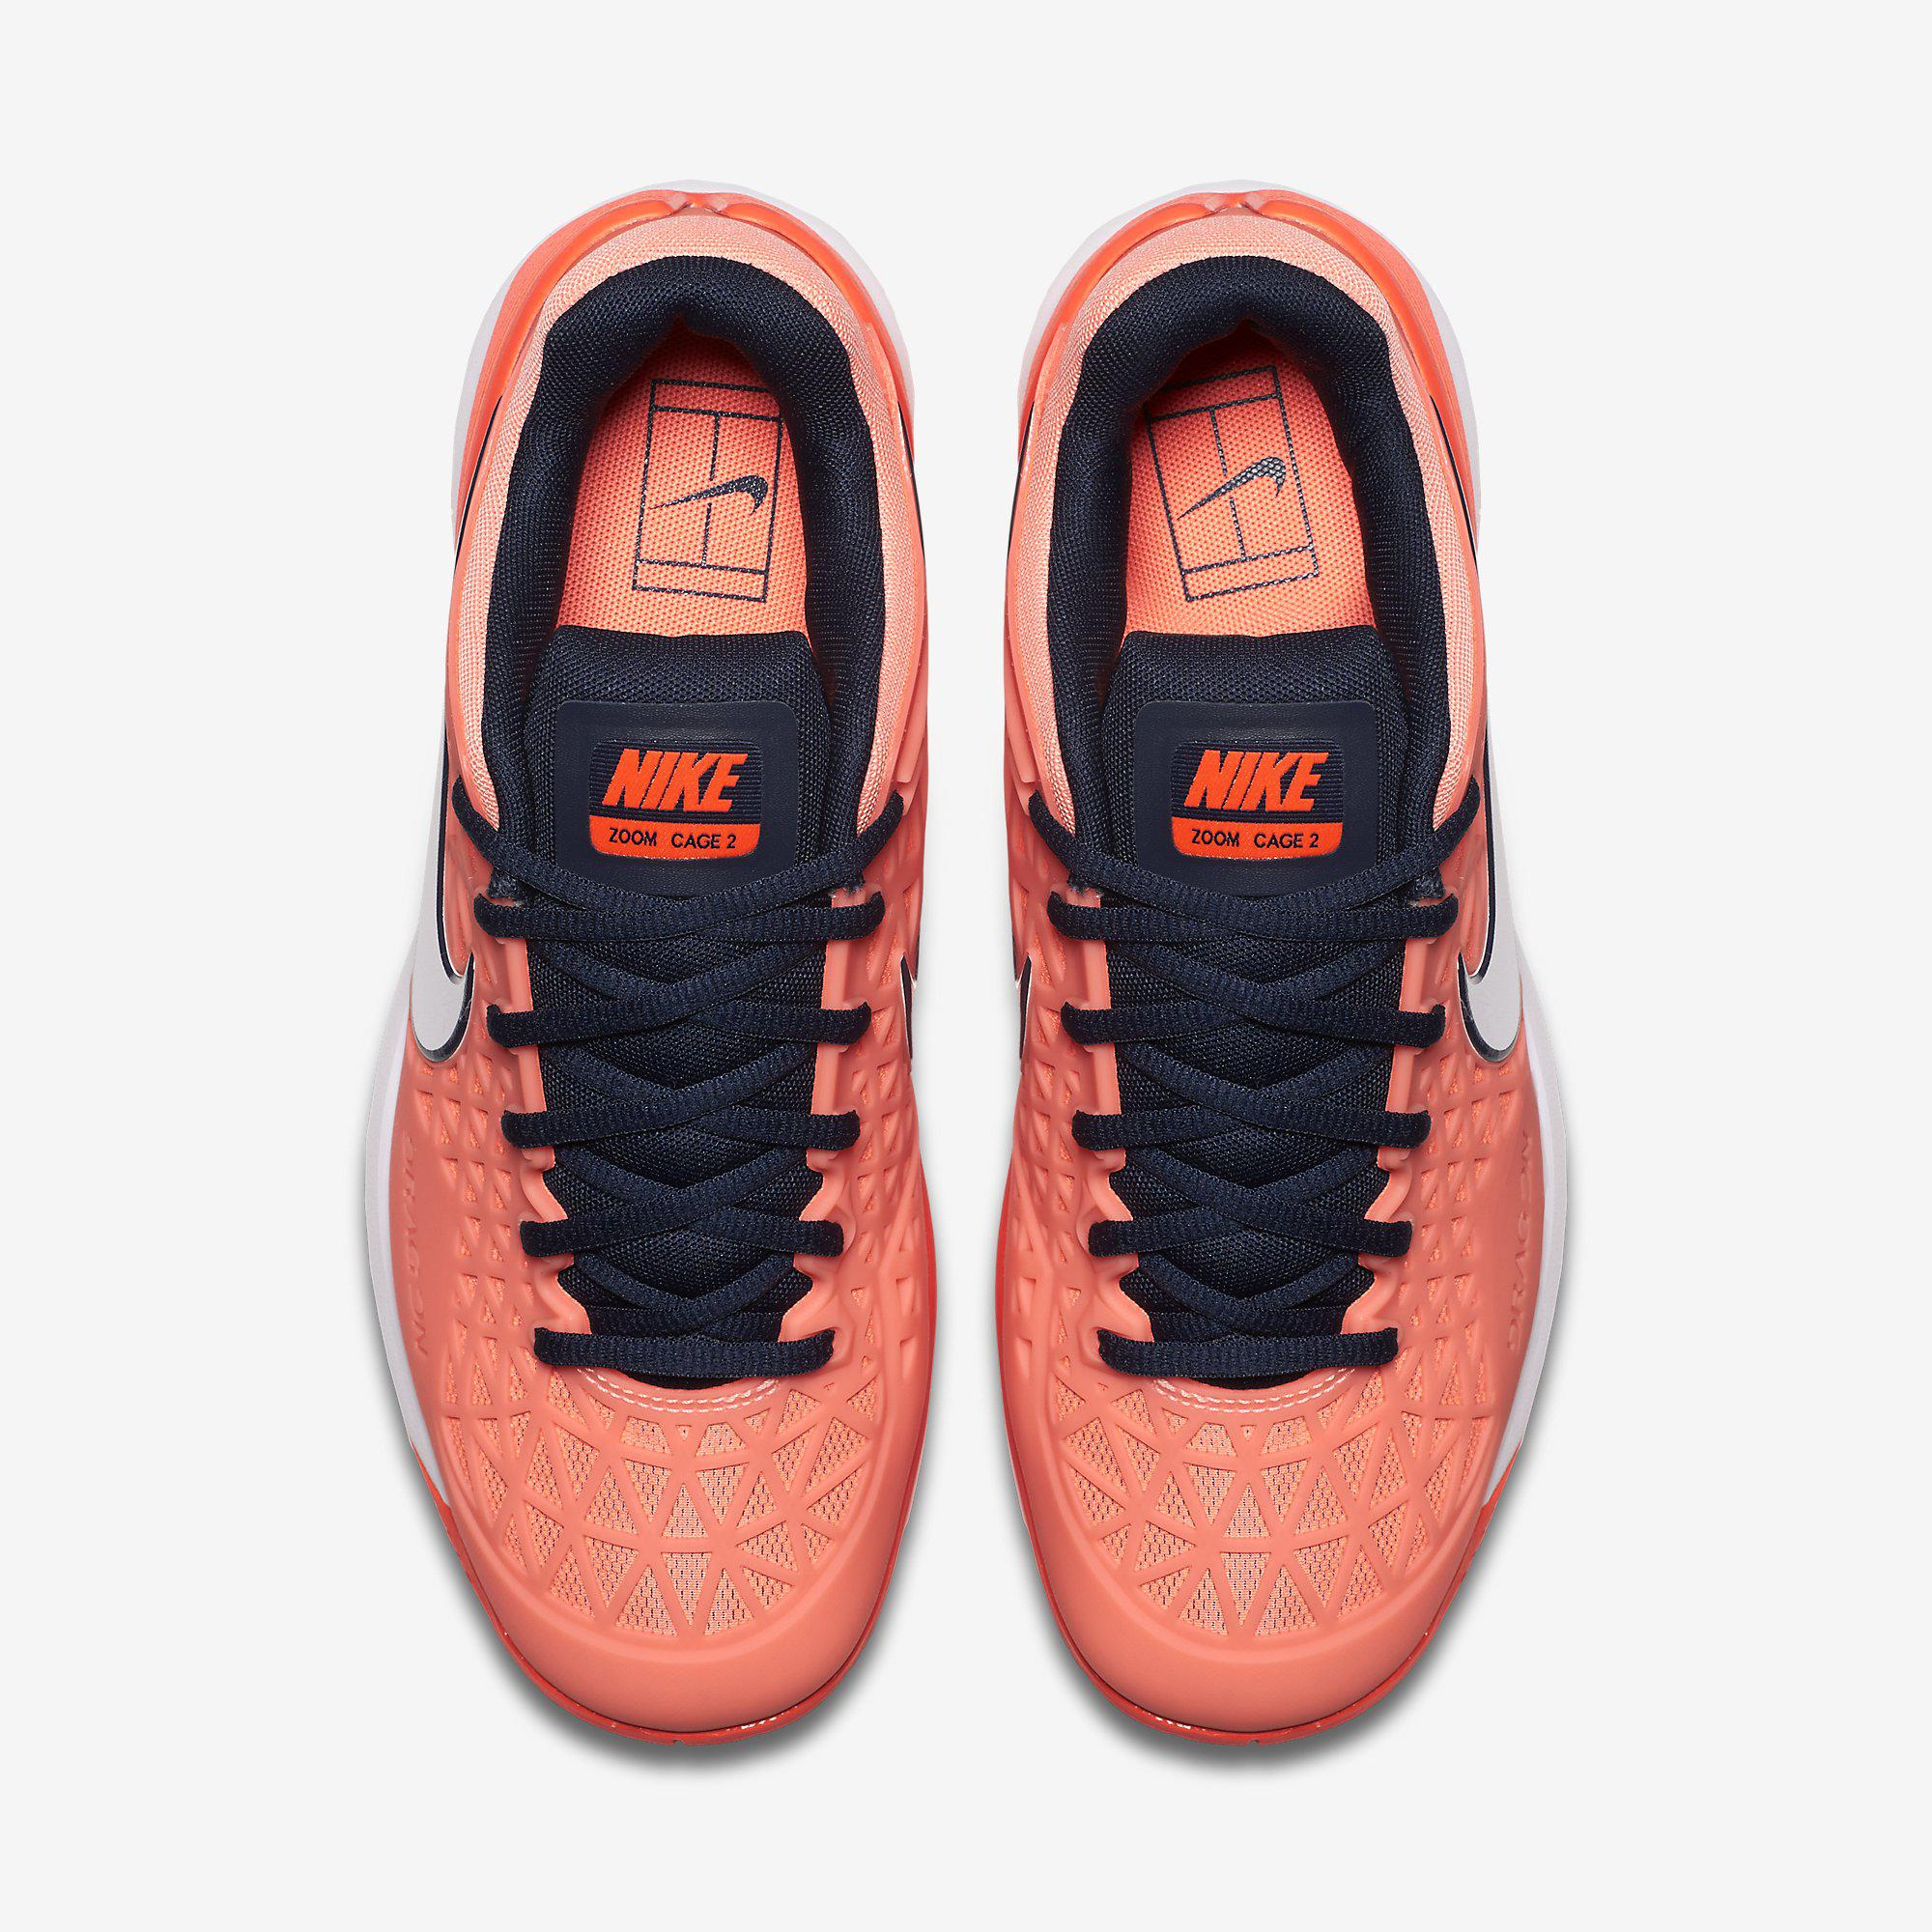 Nike Womens Zoom Cage 2 Tennis Shoes - Orange Coral - Tennisnuts.com b0031e7c6fe